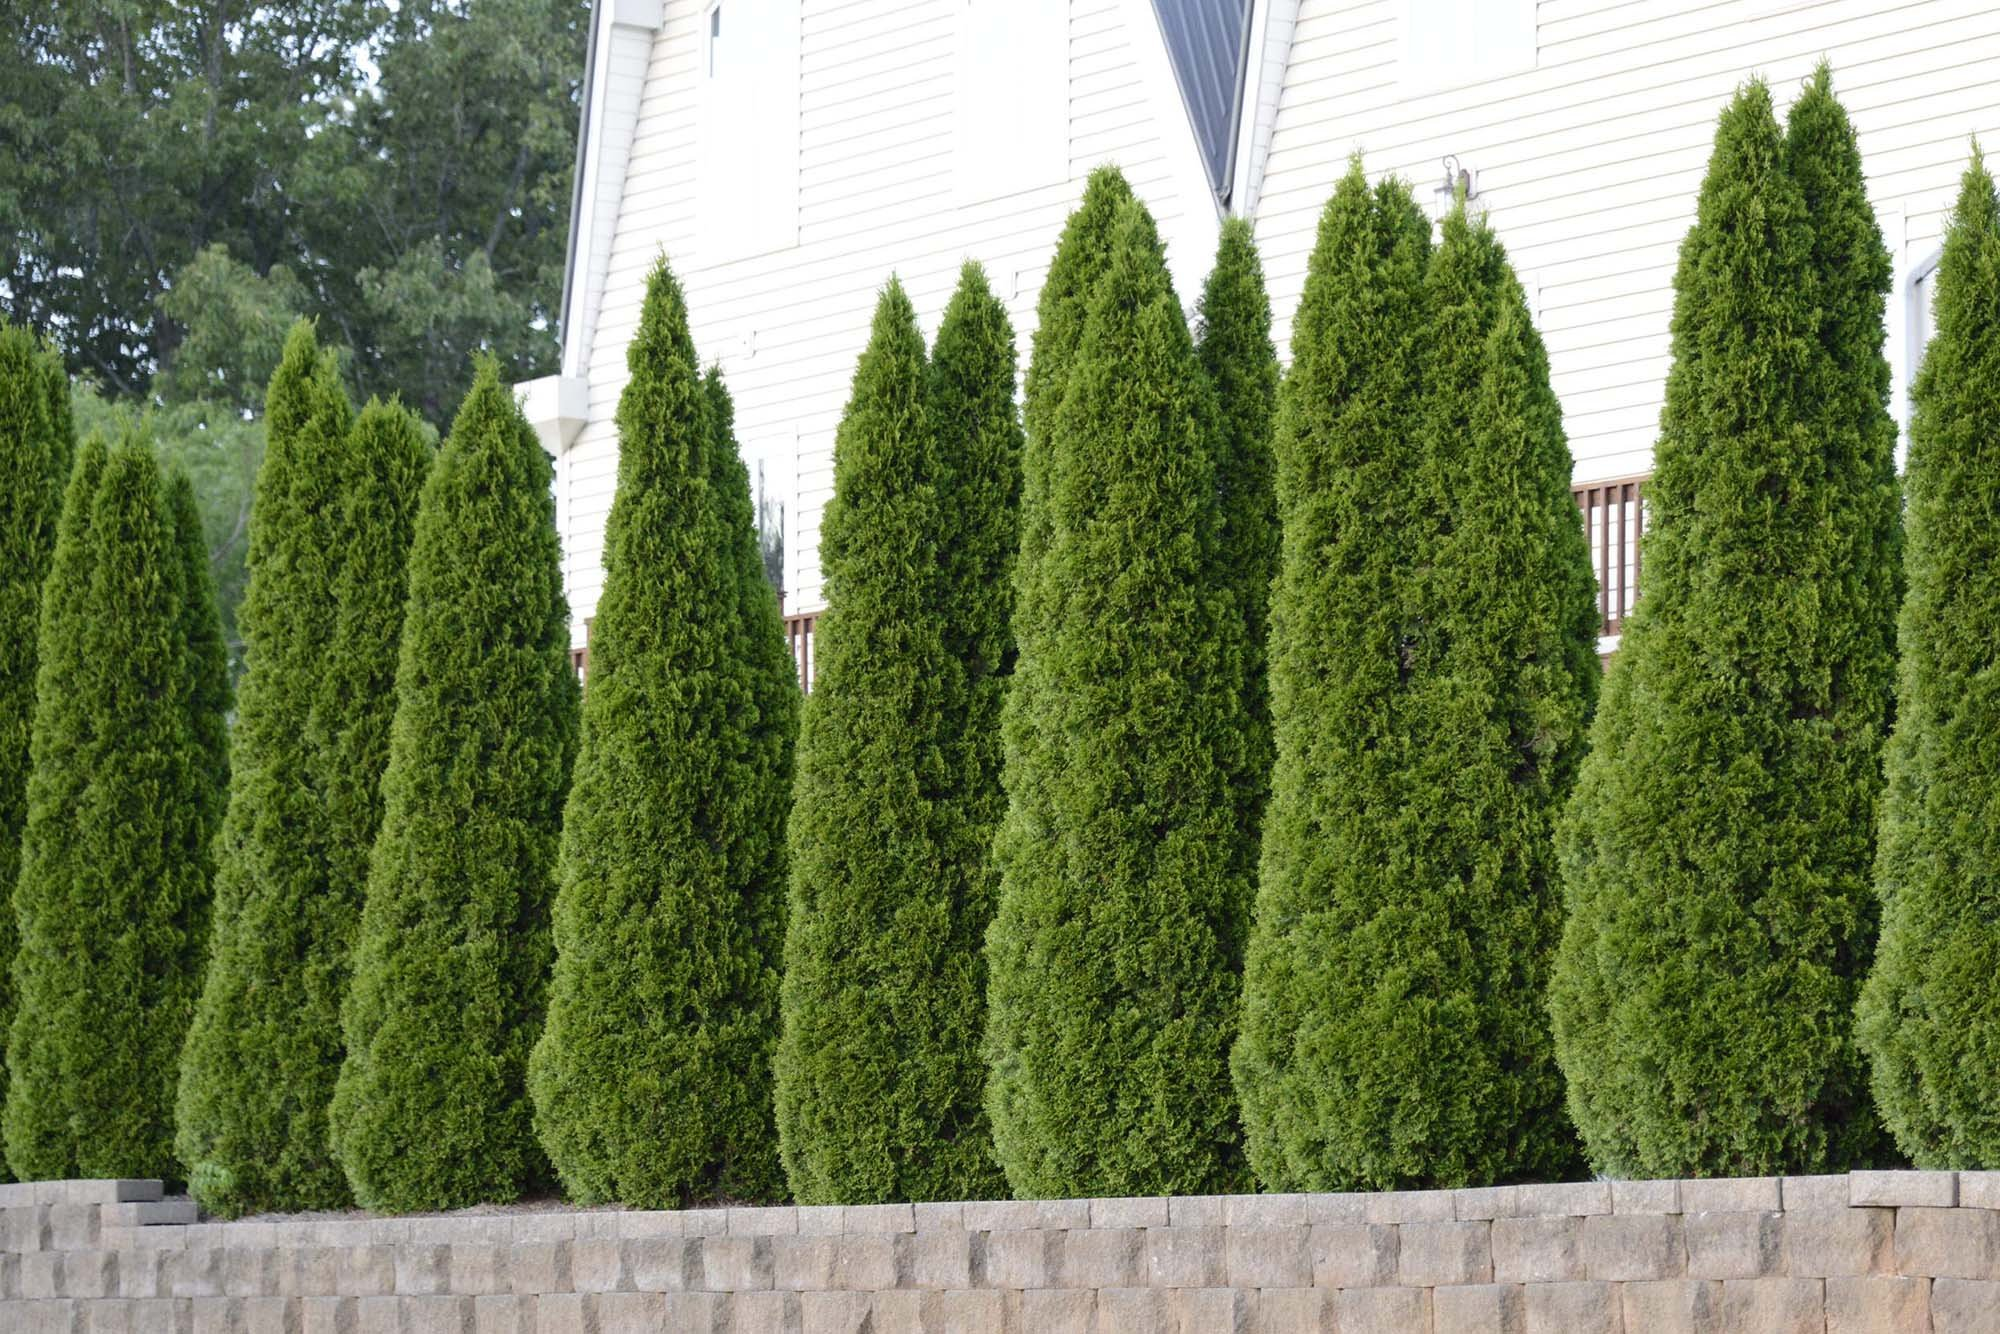 Thuja Emerald Green Arborvitae - 60 Live Plants - 2'' Pot Size - Evergreen Privacy Tree by Florida Foliage (Image #3)